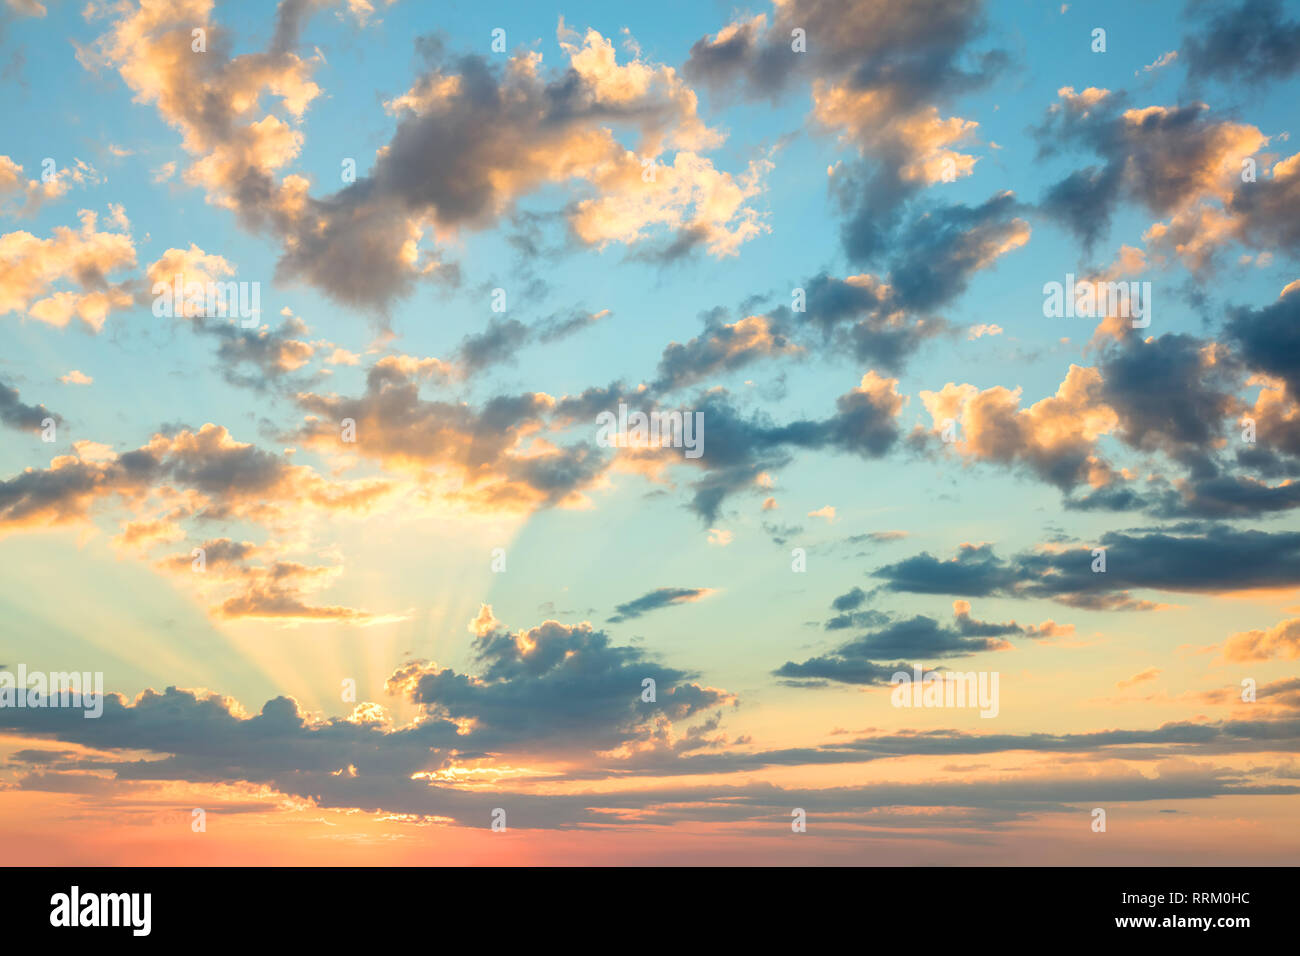 Sunshine Sunrise sky - gentle colors of soft clouds and sunshine with rays, amazing real background for wallpaper, big size - Stock Image